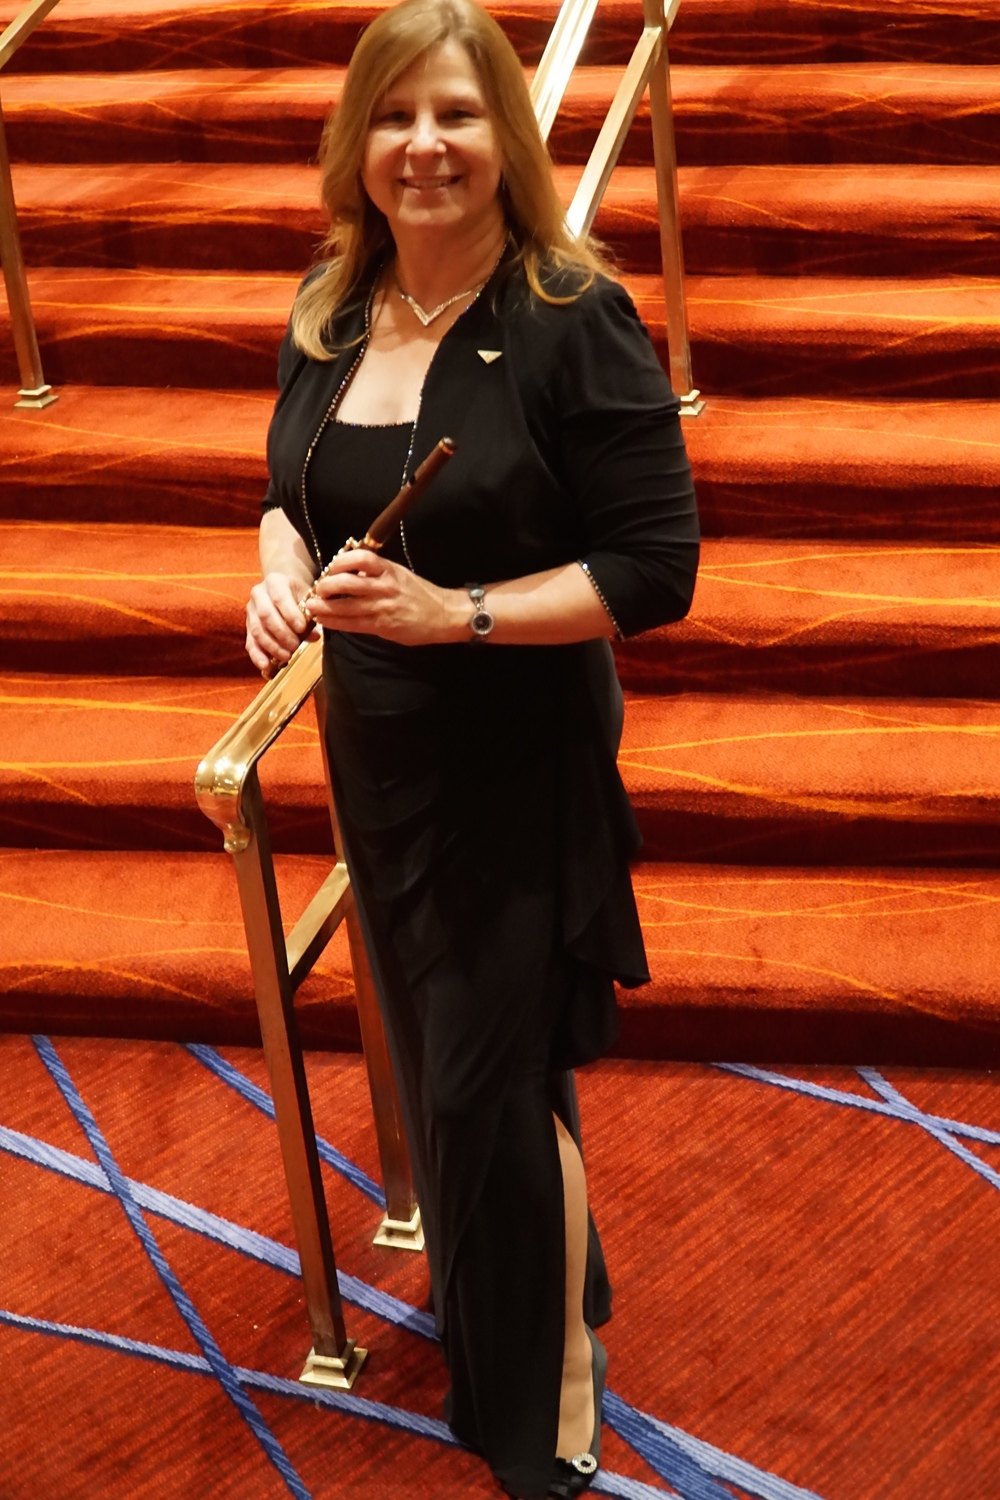 Lois Herbine after the closing ceremonies of the National Flute Association convention in Washington D.C, 2015, where she was a solo piccolo performer on John Williams,  The Patriot  and Sousa's  Stars and Stripes Forever  with the U.S. Army Field Band.